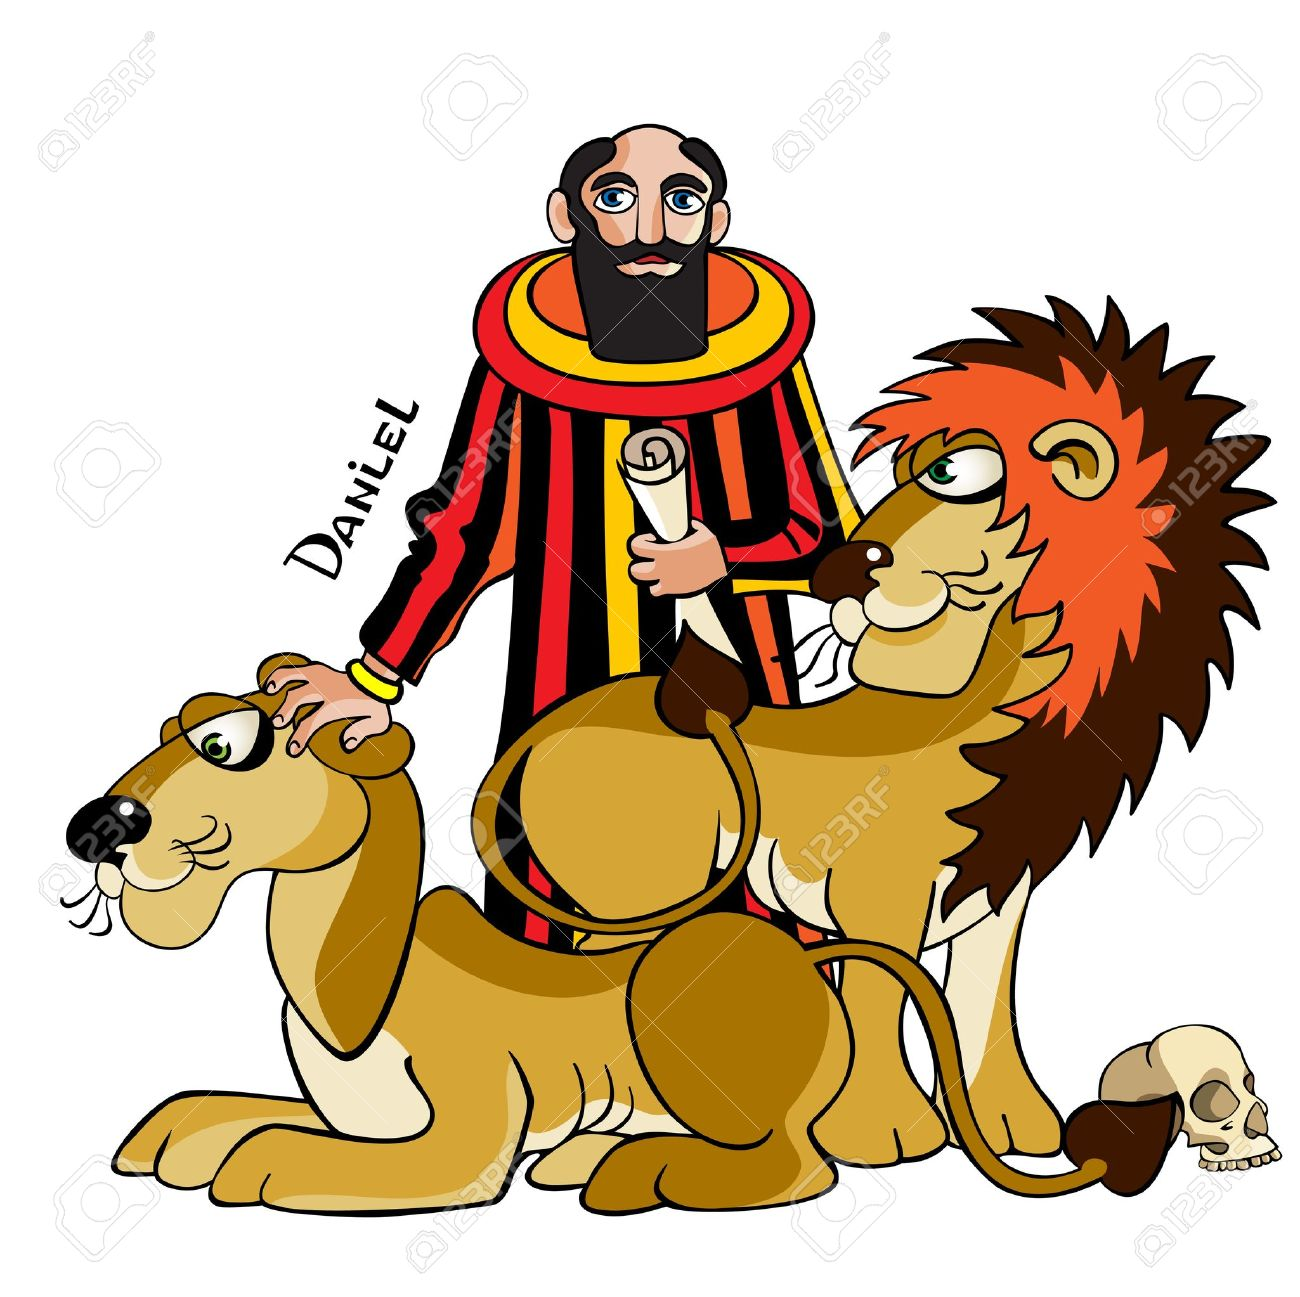 The Jewish prophet and wise man Daniel is in a ditch with lions cannibals, Bible illustration. Stock Vector - 12791069